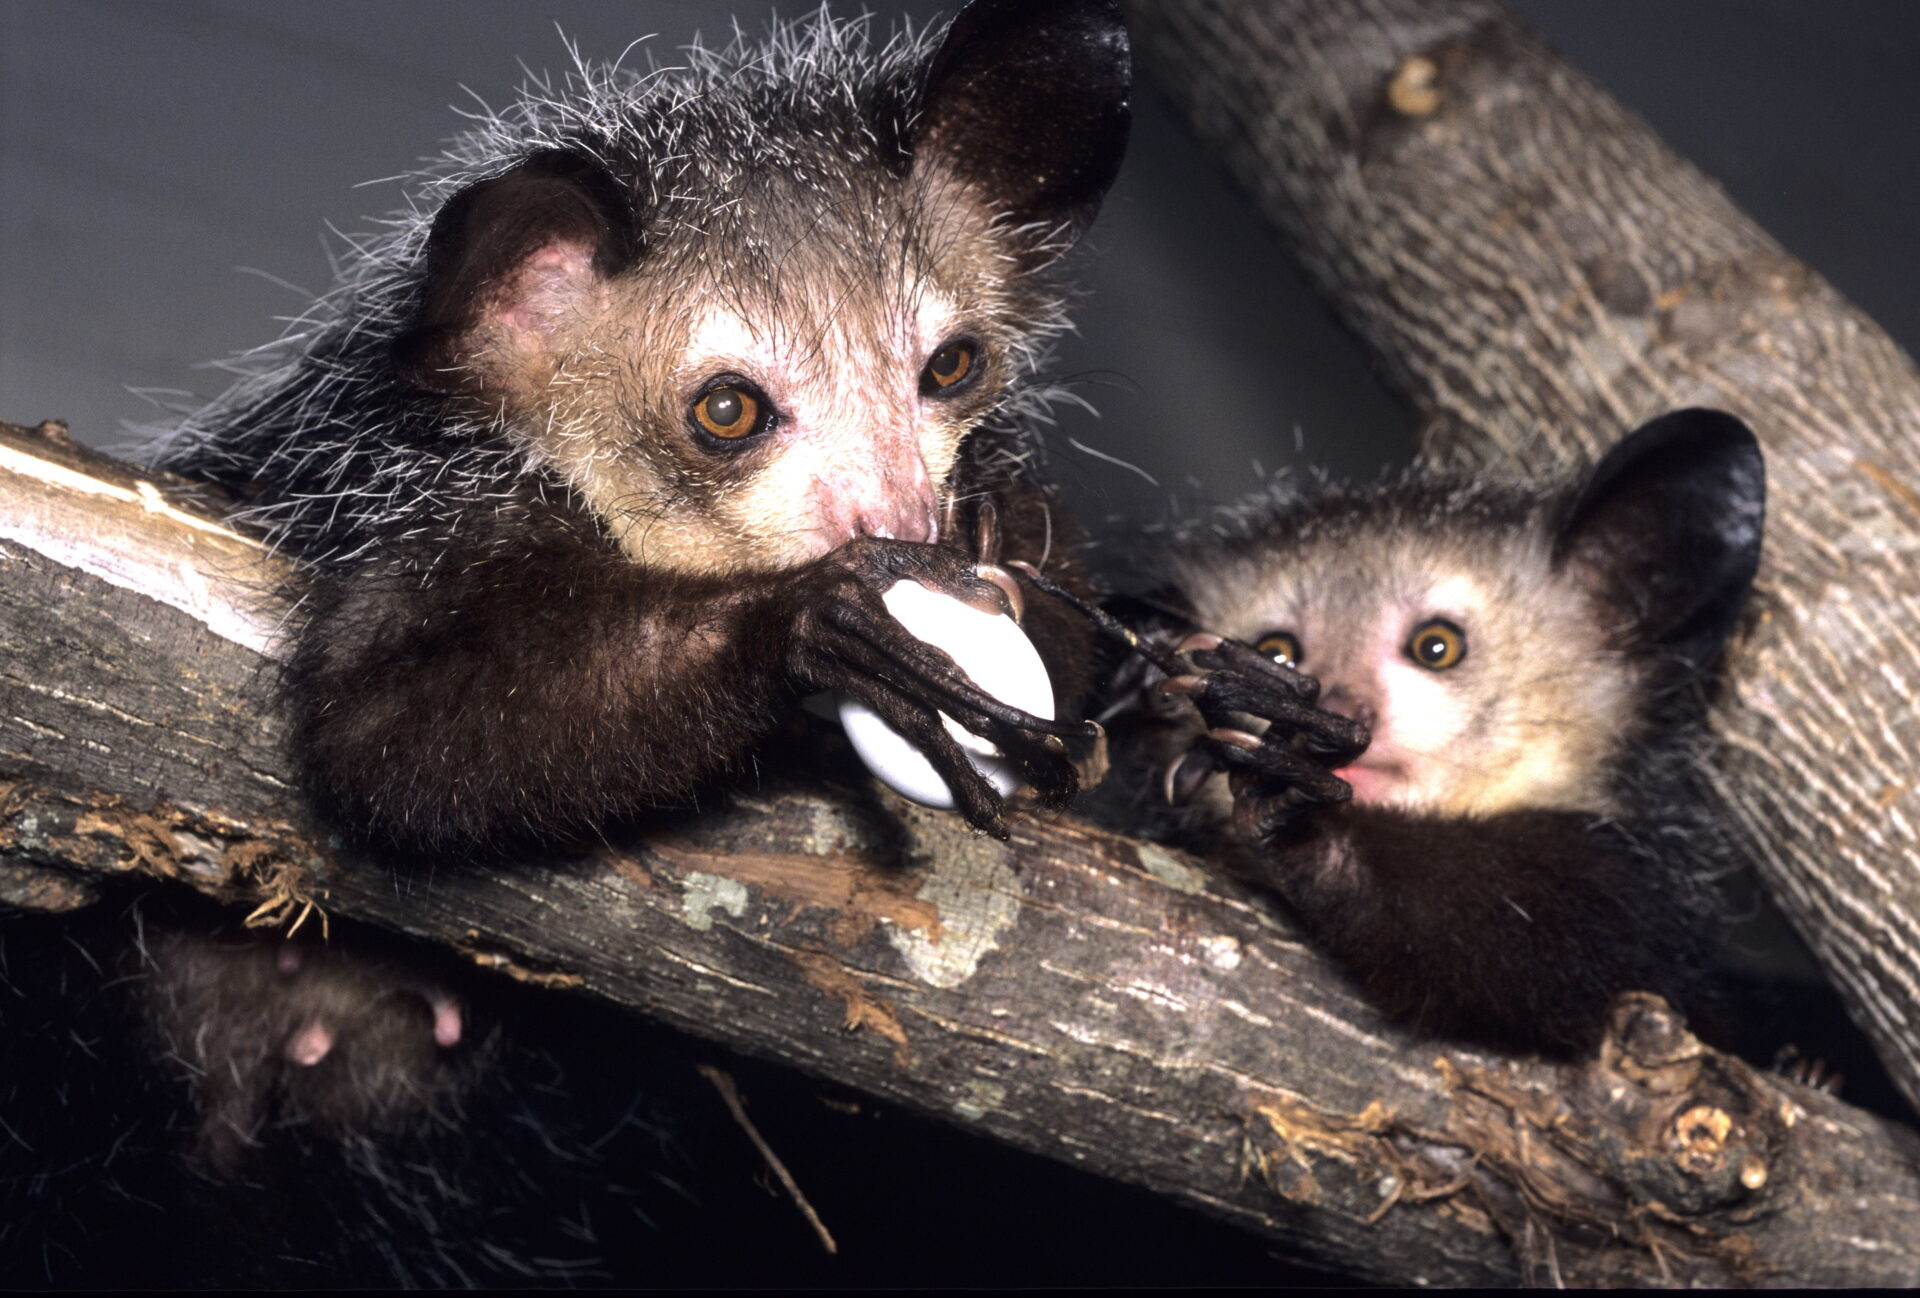 aye-aye mother and infant sharing egg tapping